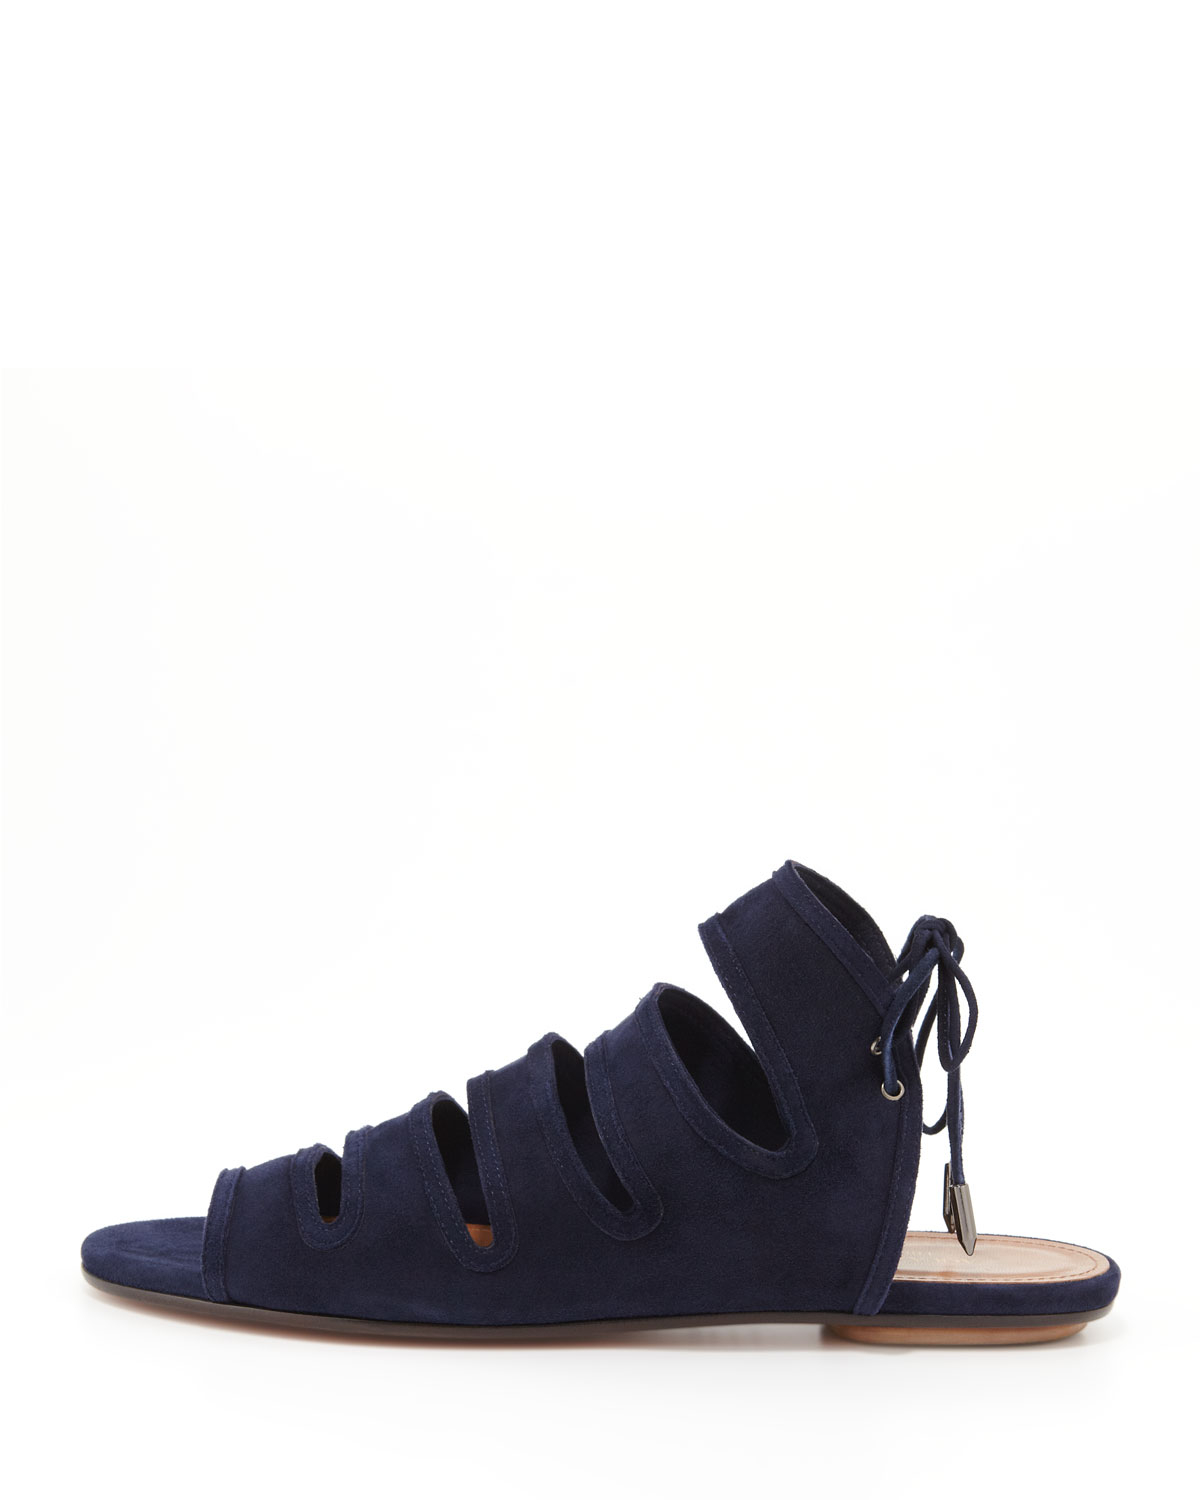 outlet latest collections 2014 newest sale online Aquazzura Sloane Suede Sandals zgvTlr